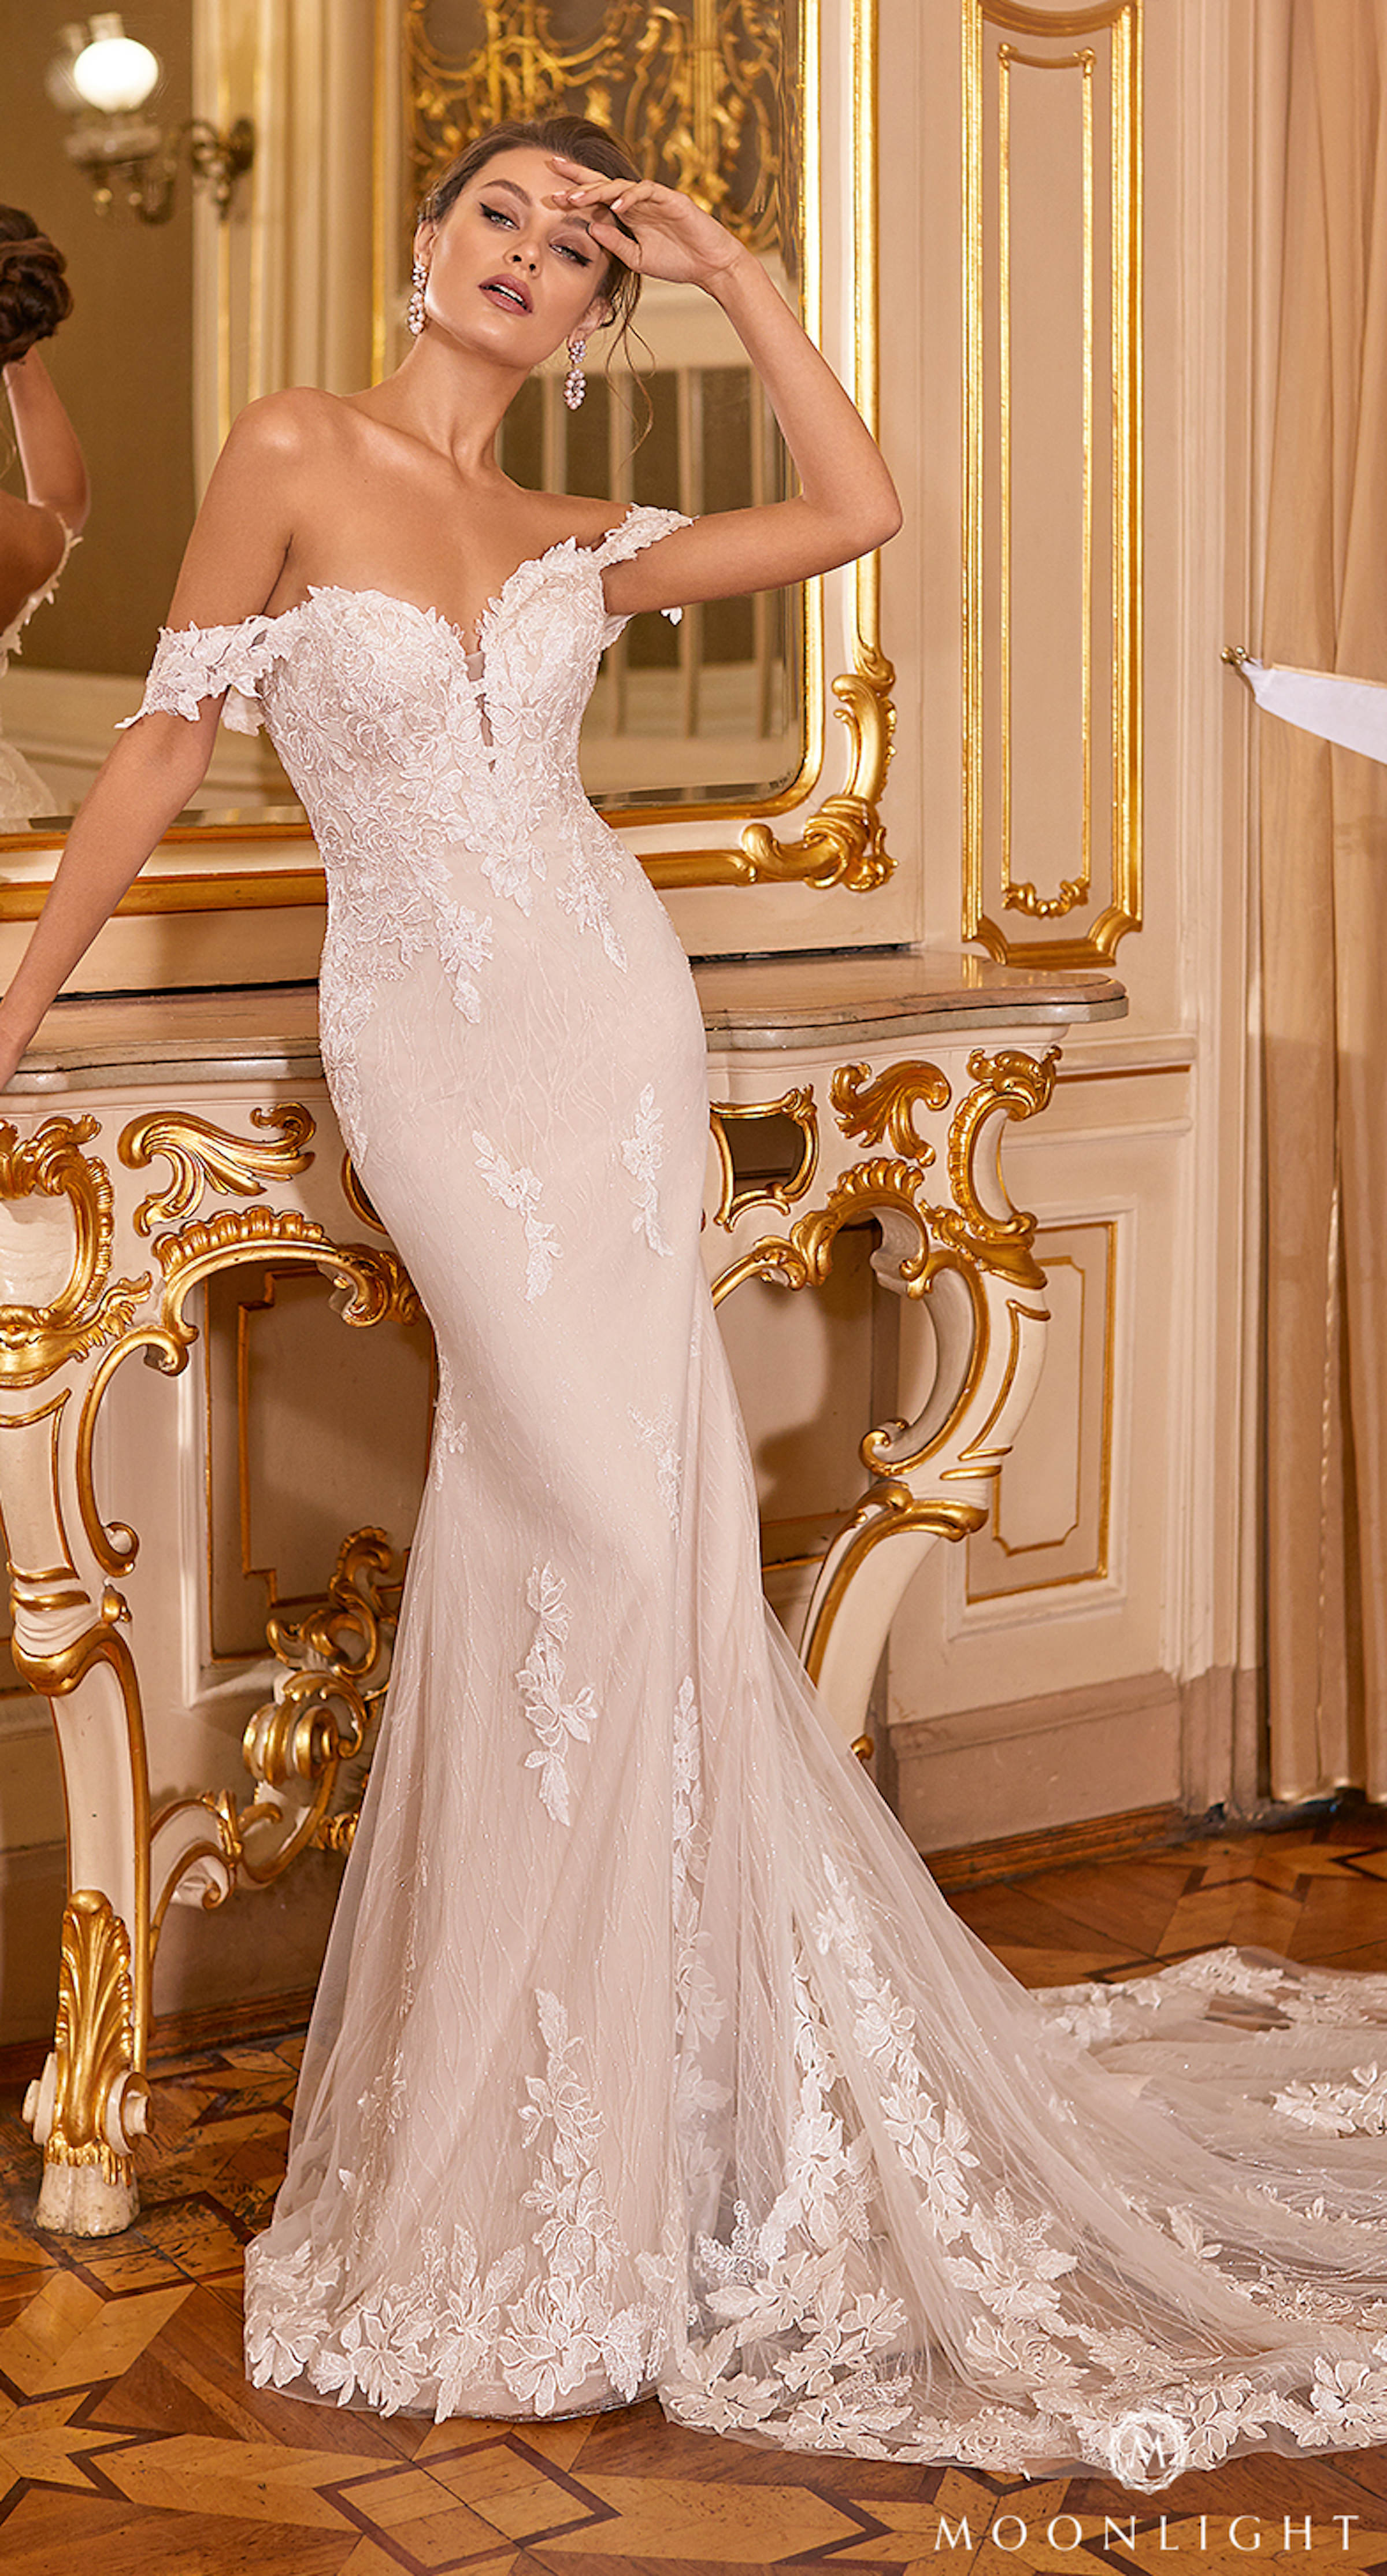 Gilded X Moonlight Collection Fall 2021 Wedding Dresses - J6830